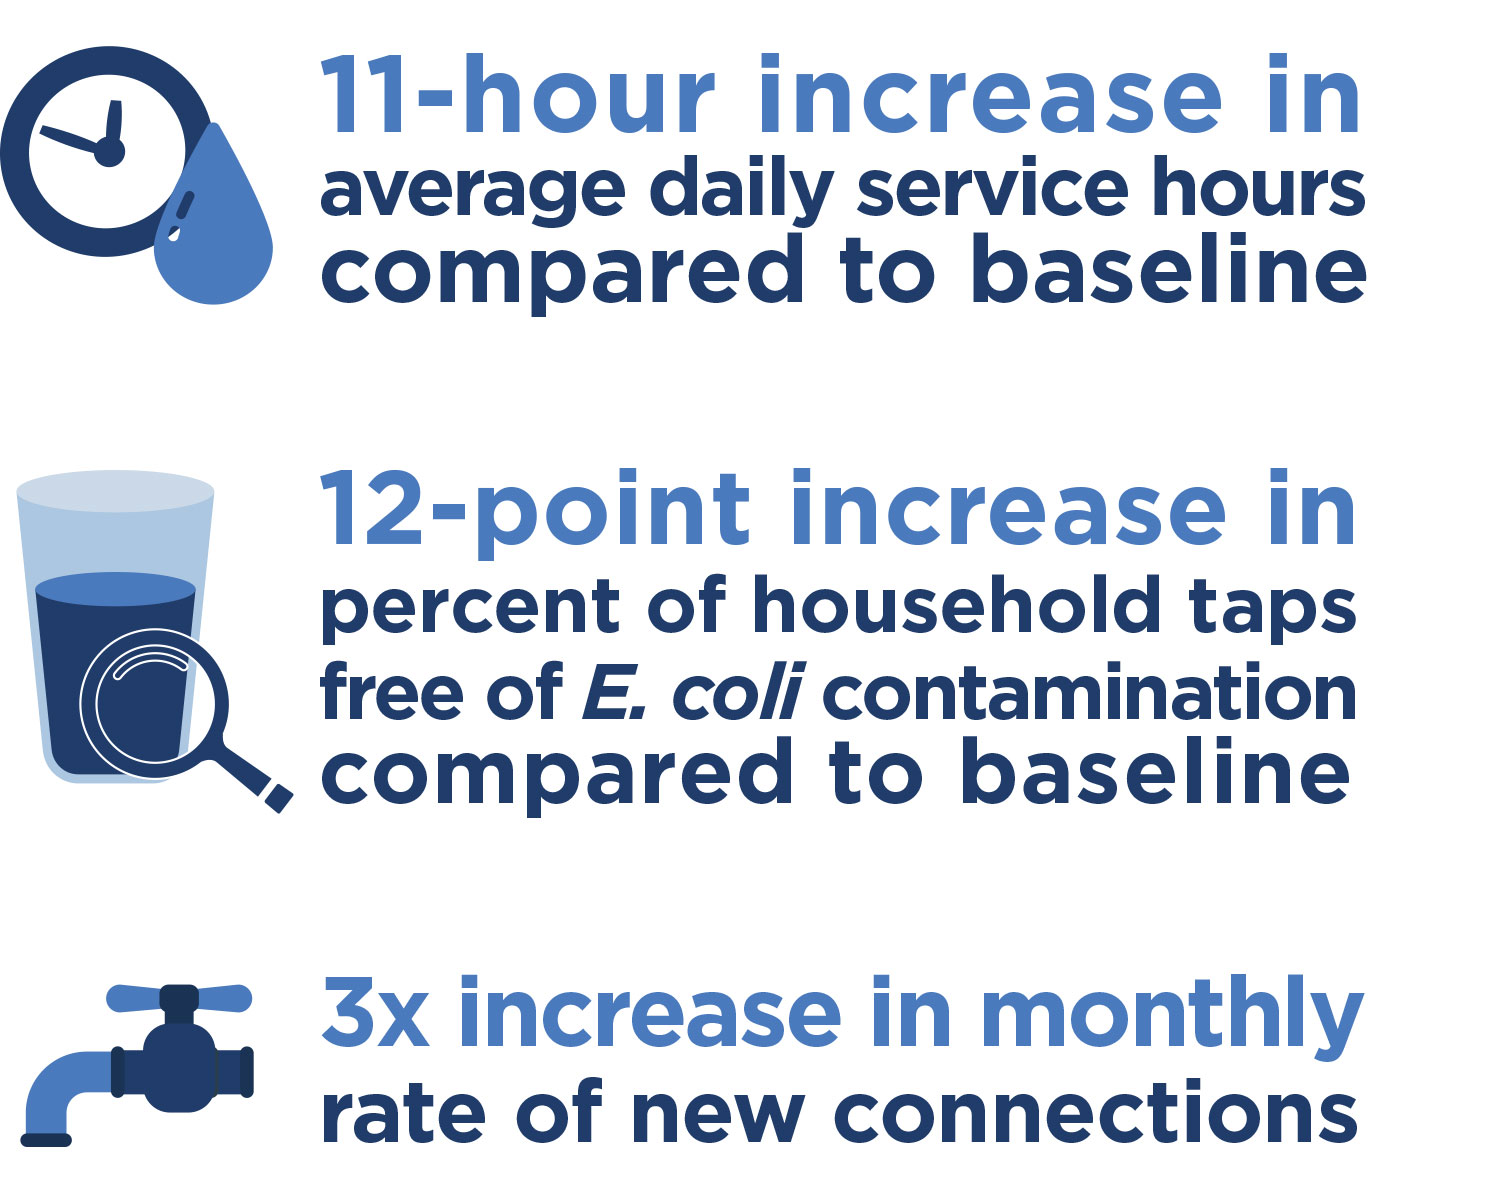 Graphic containing 3 data points about water use and water service increase.